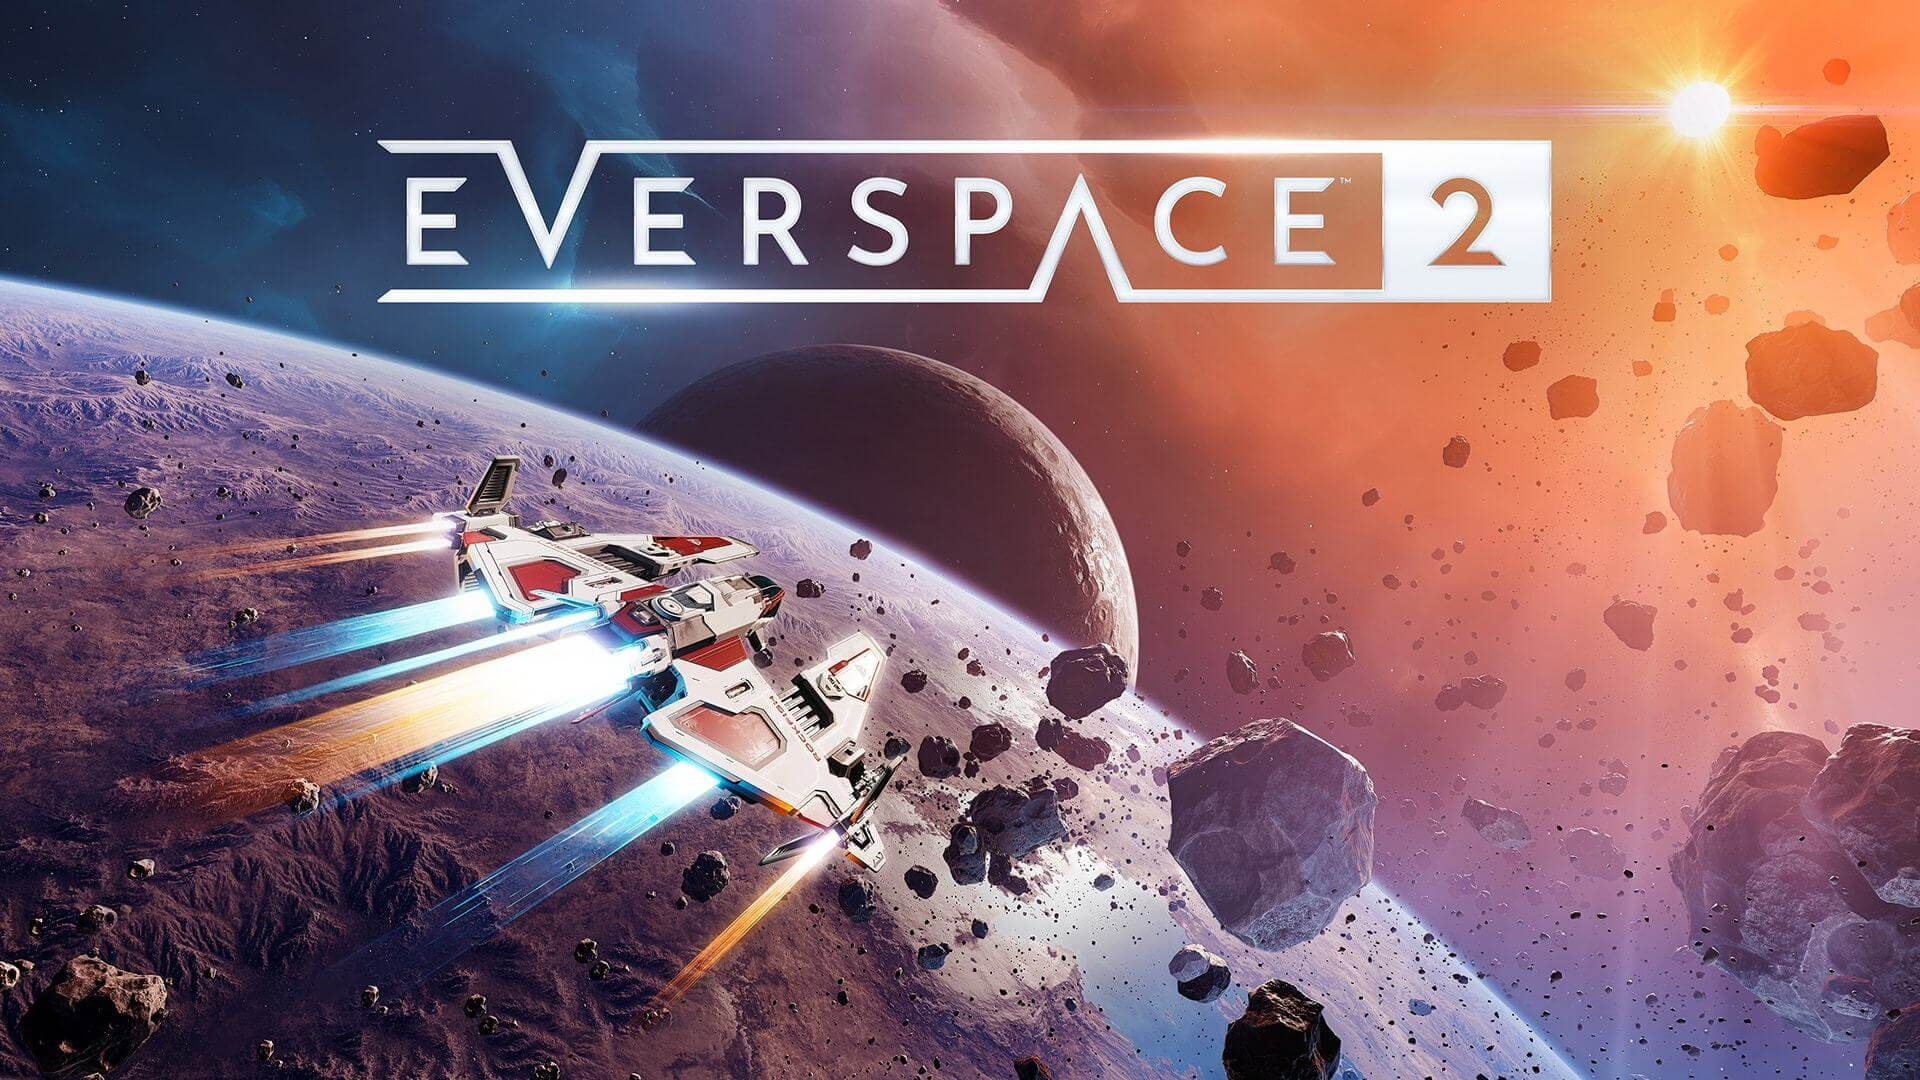 Everspace 2 Early Access Impressions - Space Flight At Its Finest